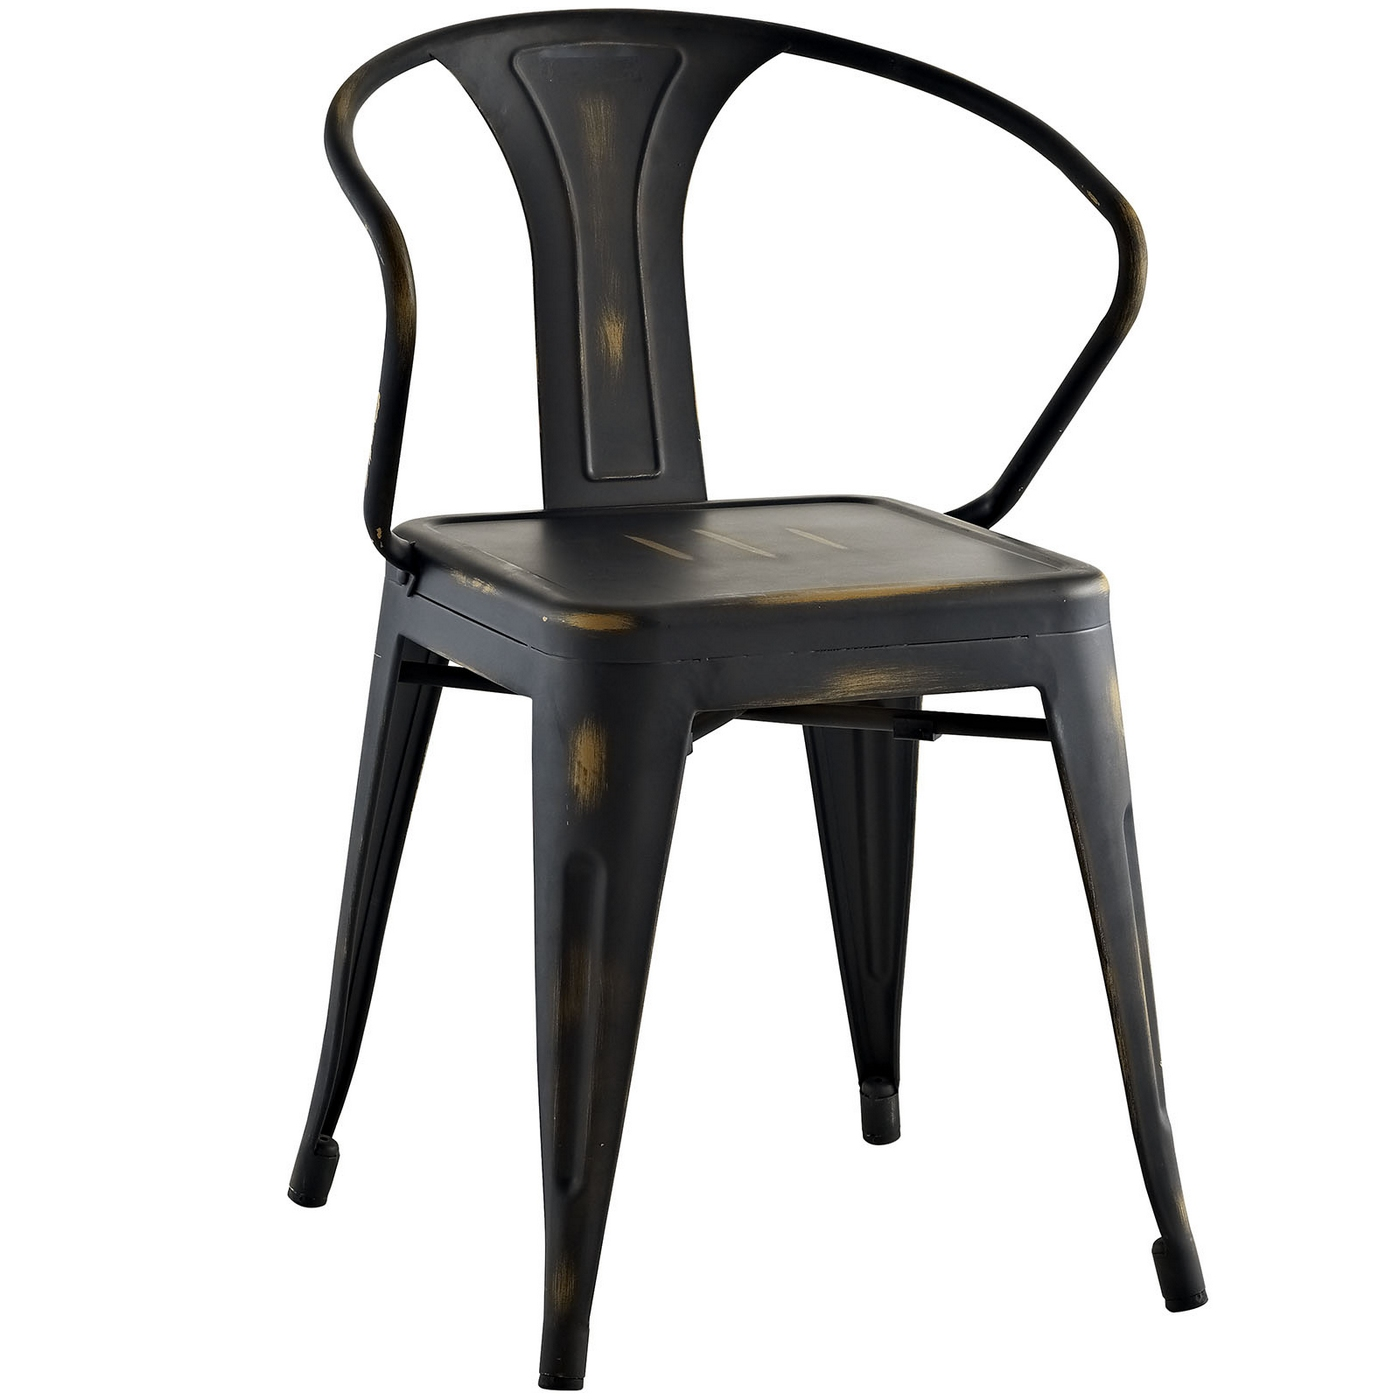 Promenade modern vintage steel arm chair with distressed for Modern arm chair